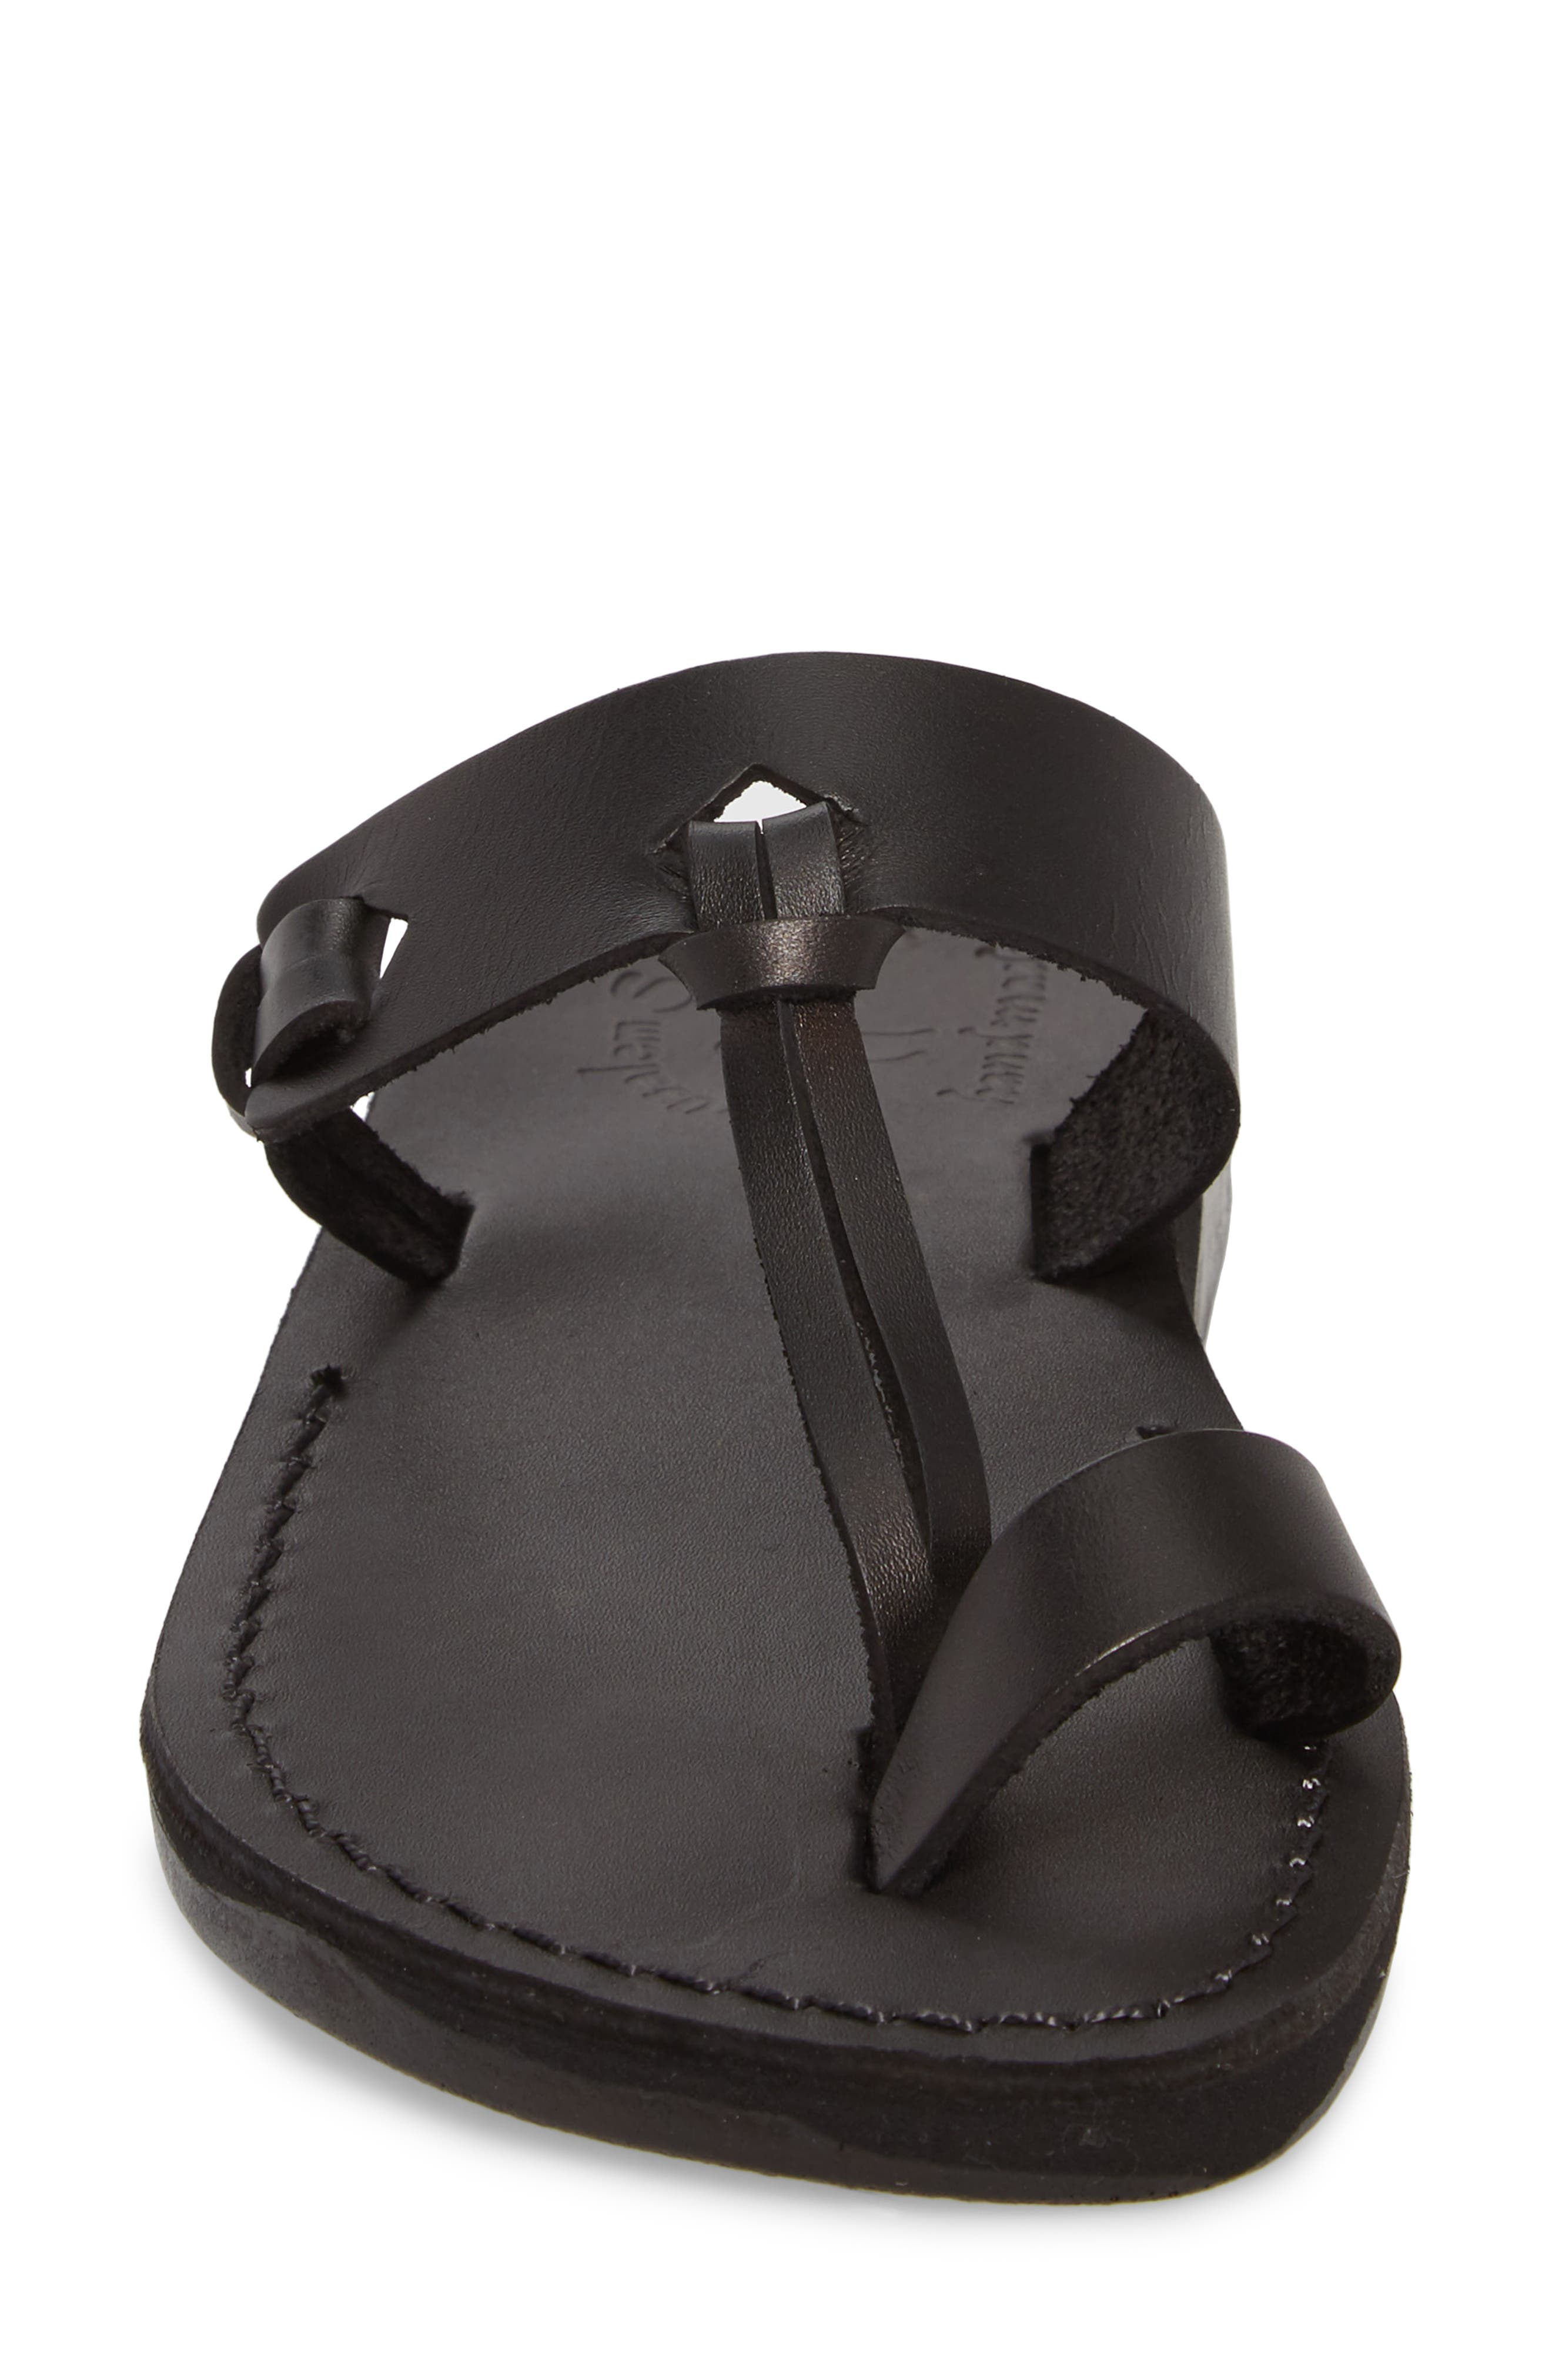 JERUSALEM SANDALS,                             David Toe-Loop Sandal,                             Alternate thumbnail 4, color,                             BLACK LEATHER